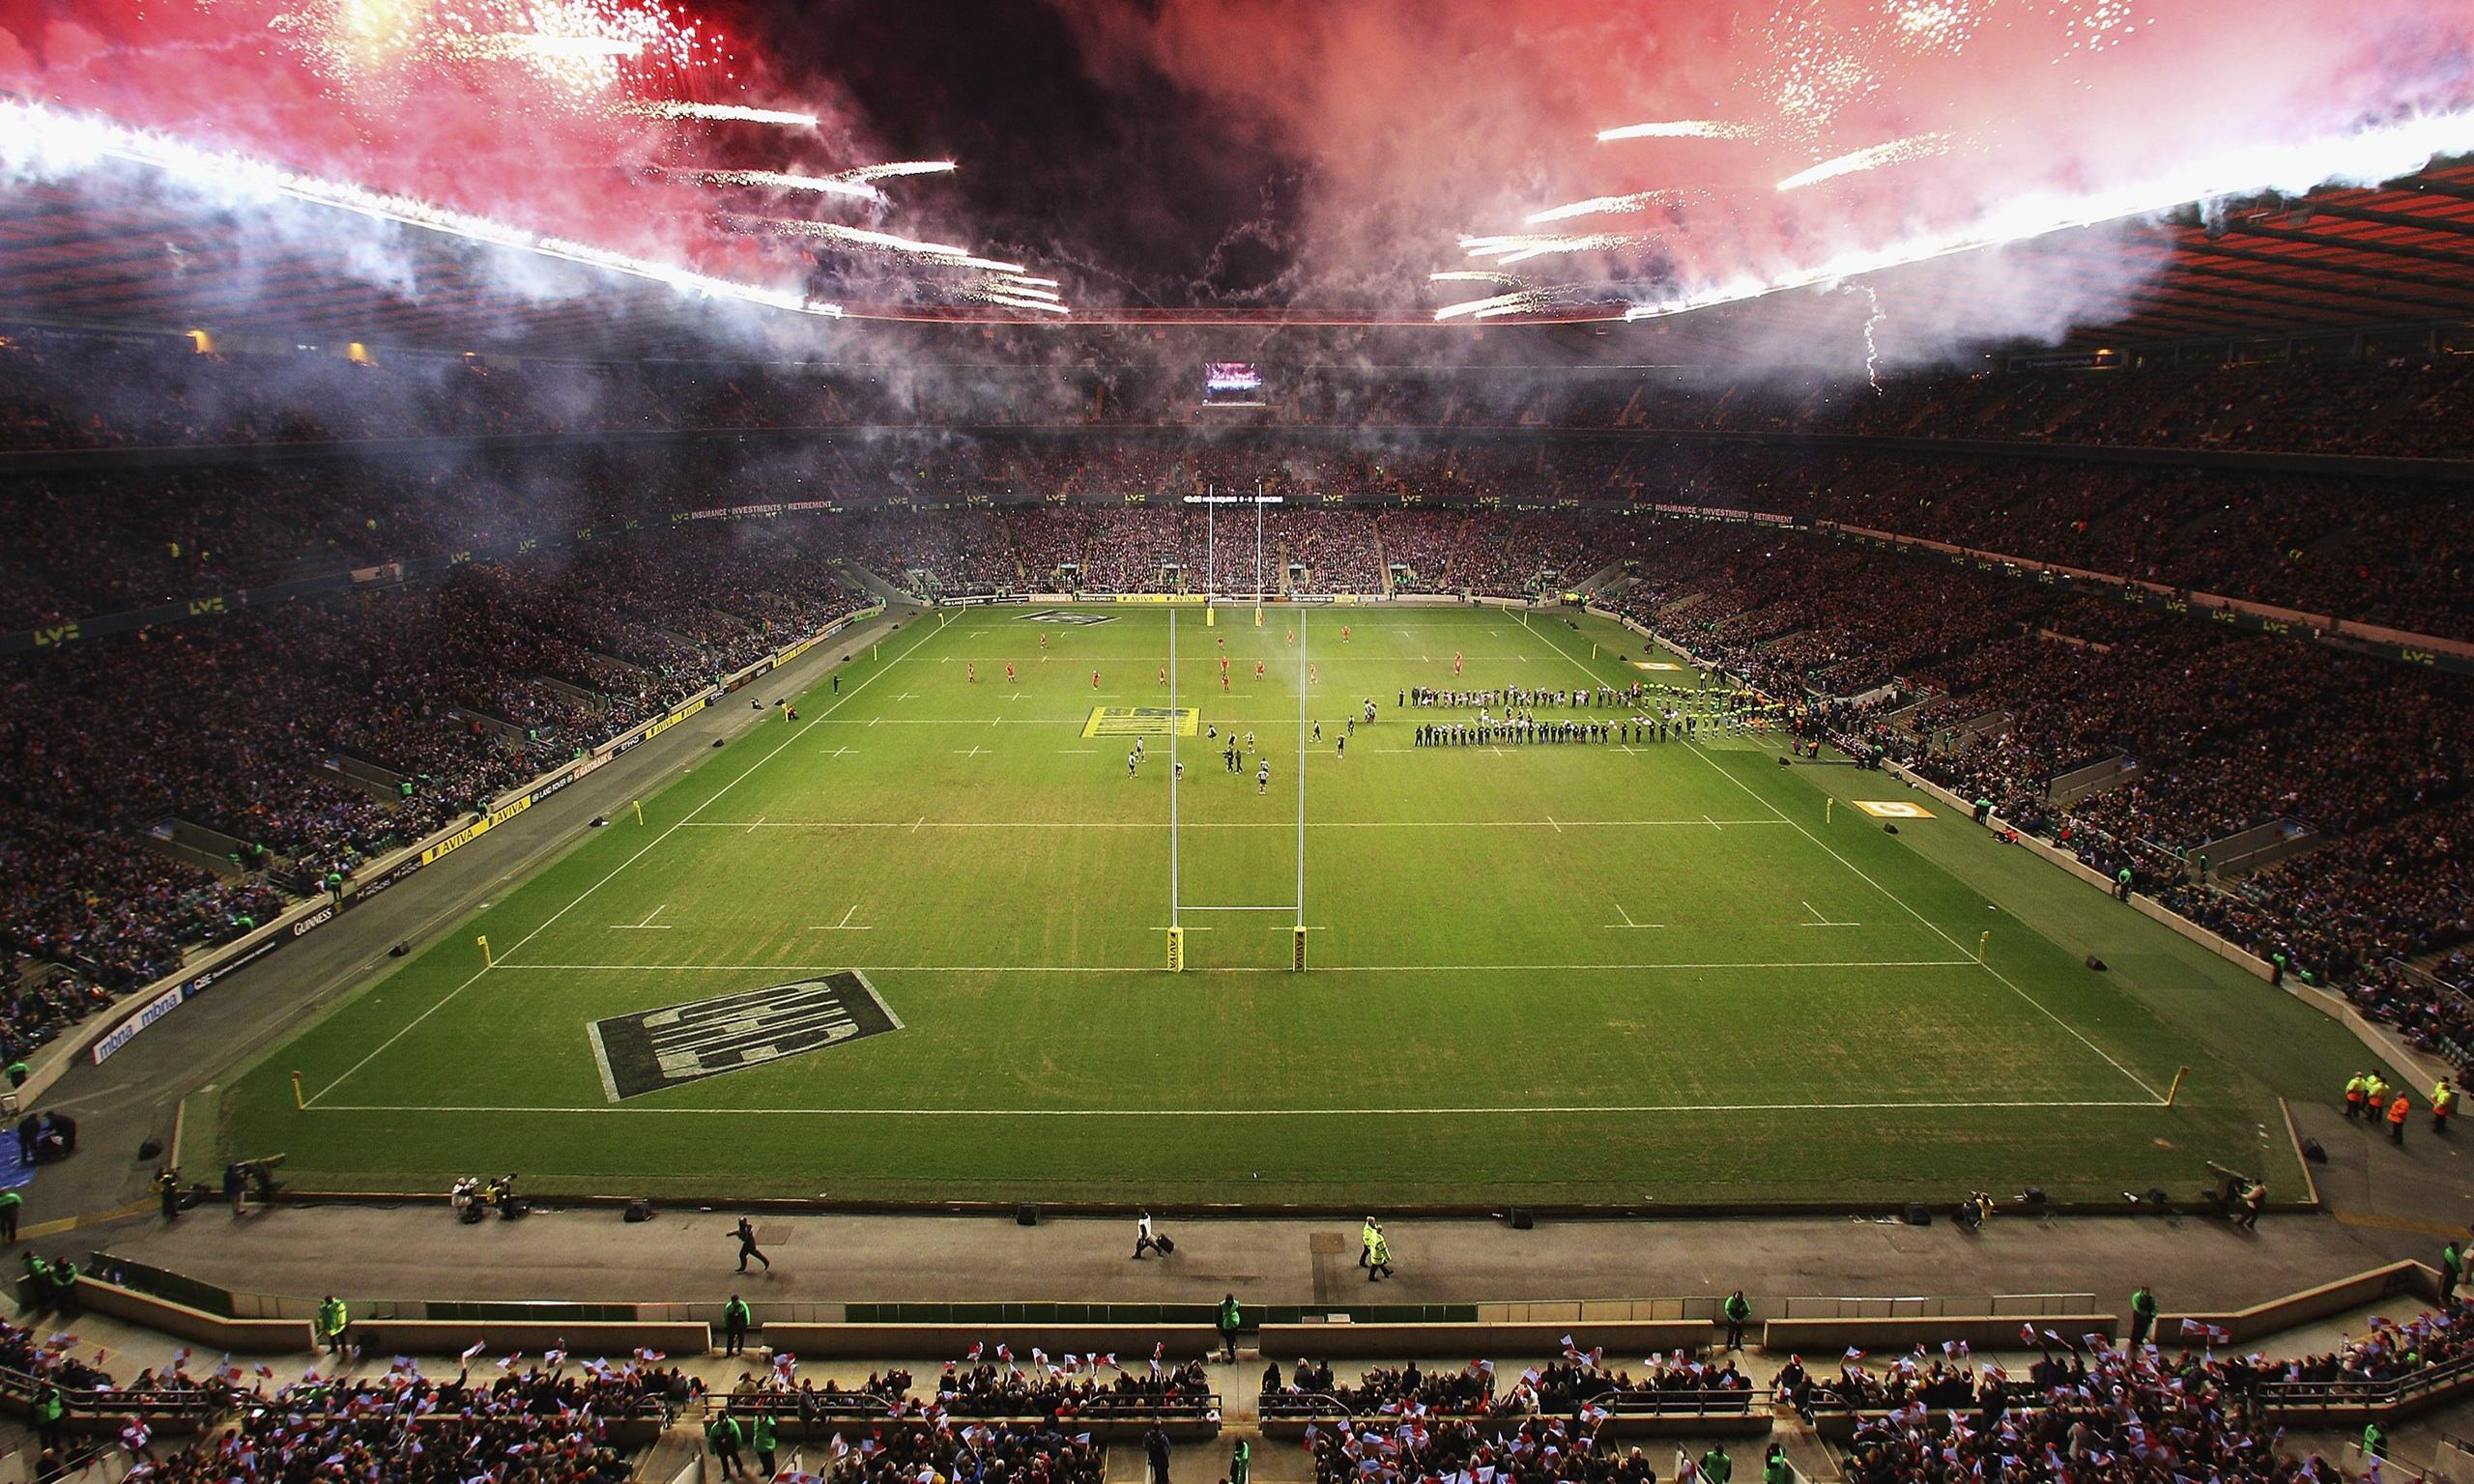 Rugby World Cup 2019 Wallpapers - Rugby World Cup Background , HD Wallpaper & Backgrounds